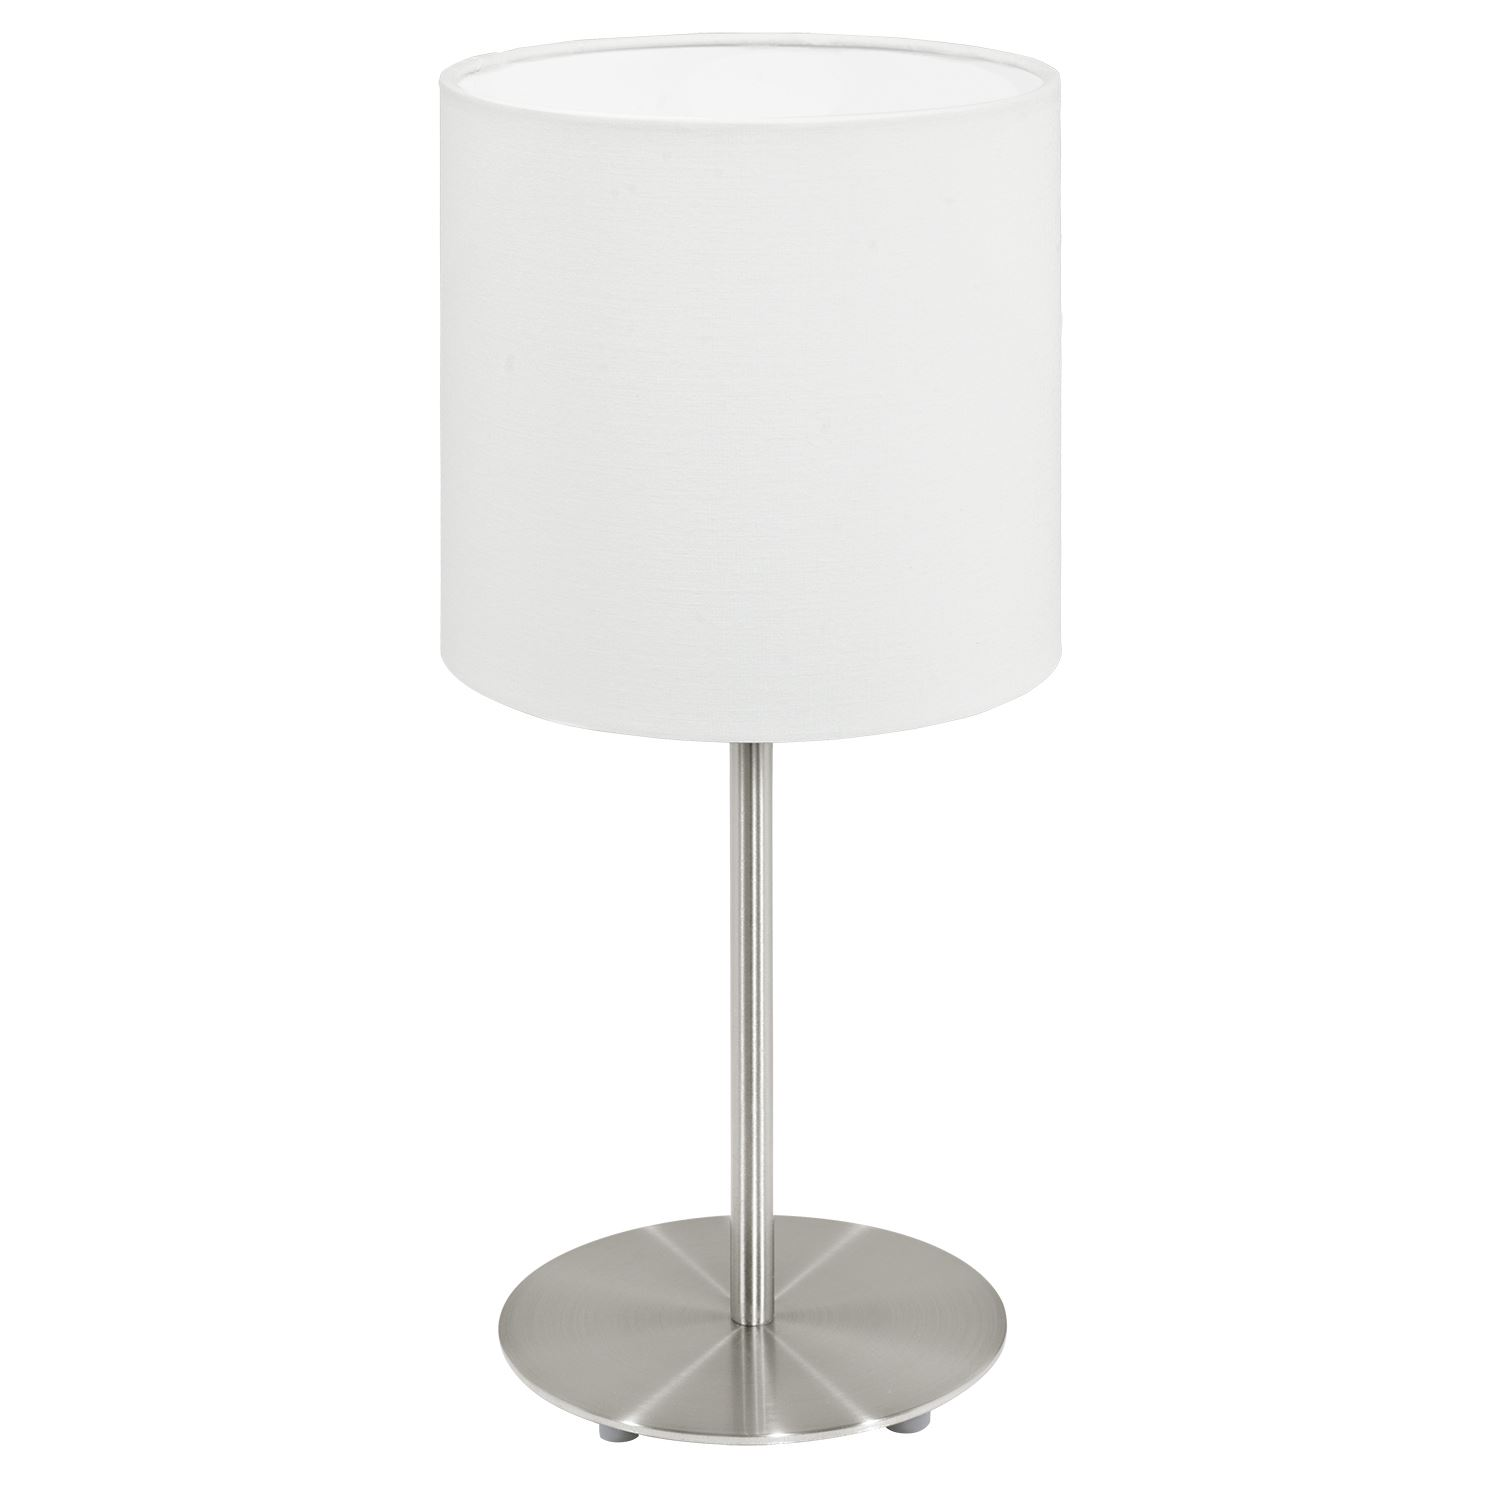 Pasteri Steel Table Lamp 1 Light Satin Nickel Fabric White Shade